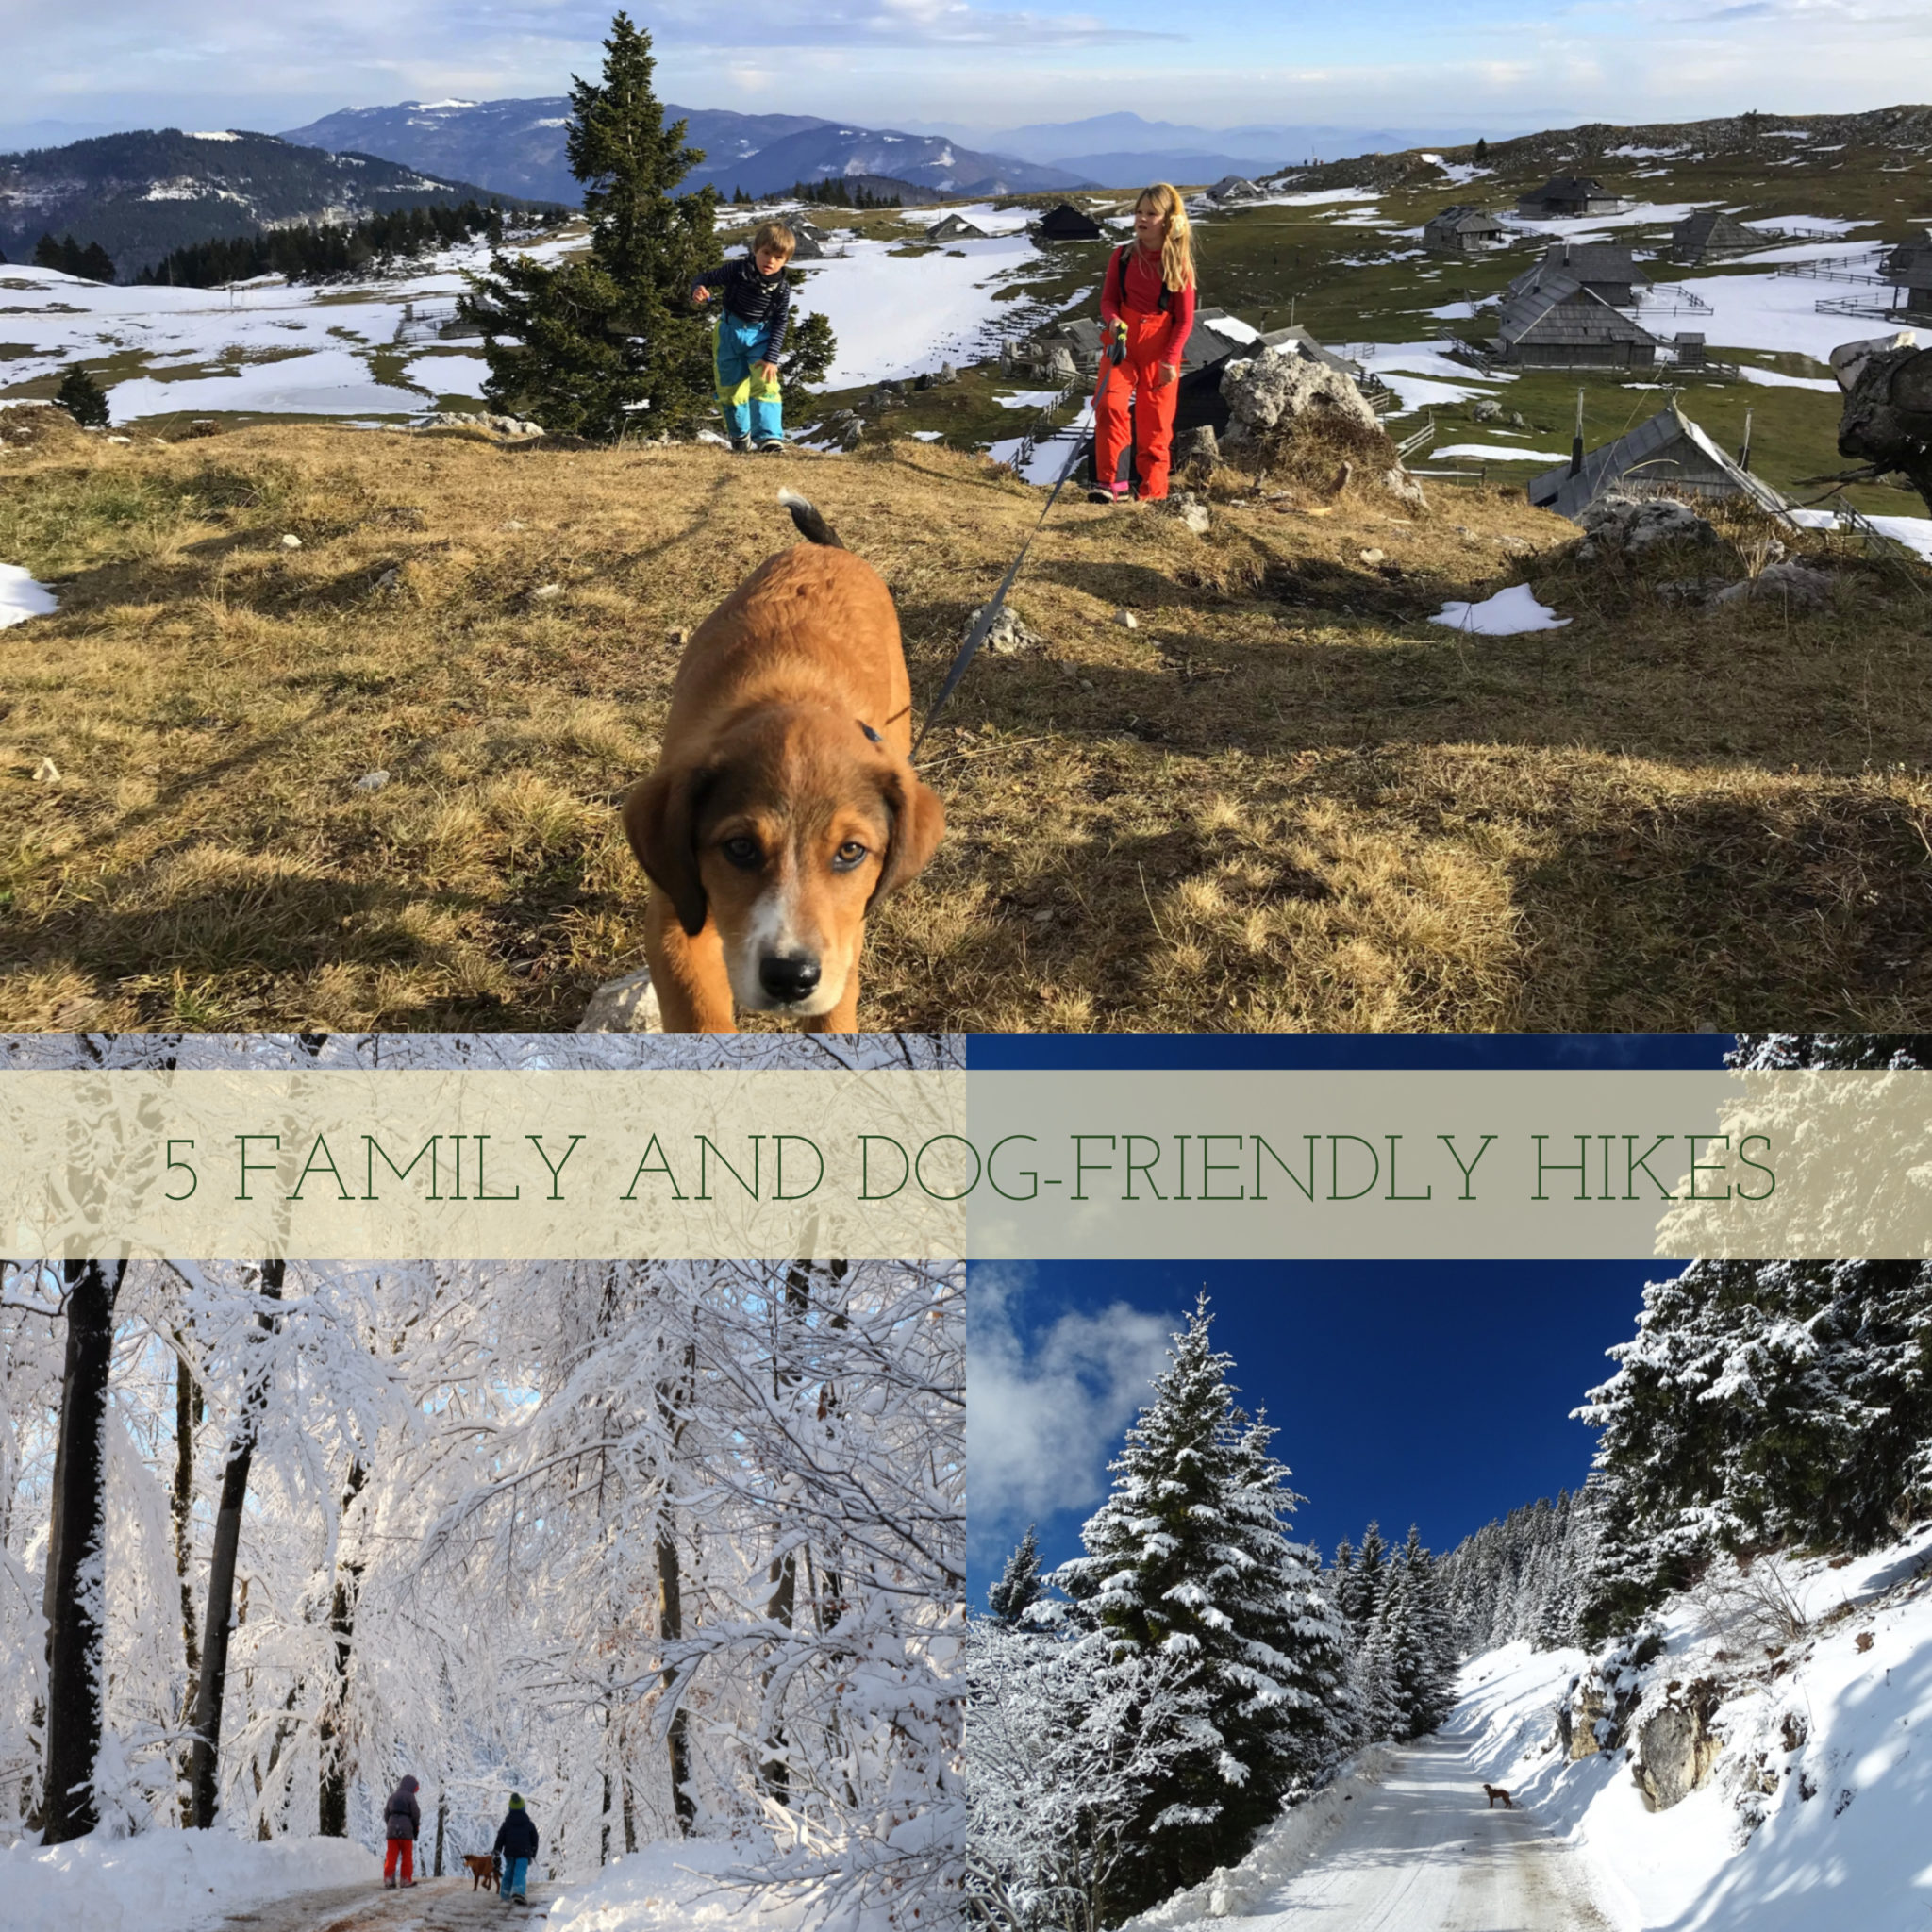 Five family and dog-friendly hikes in Slovenia